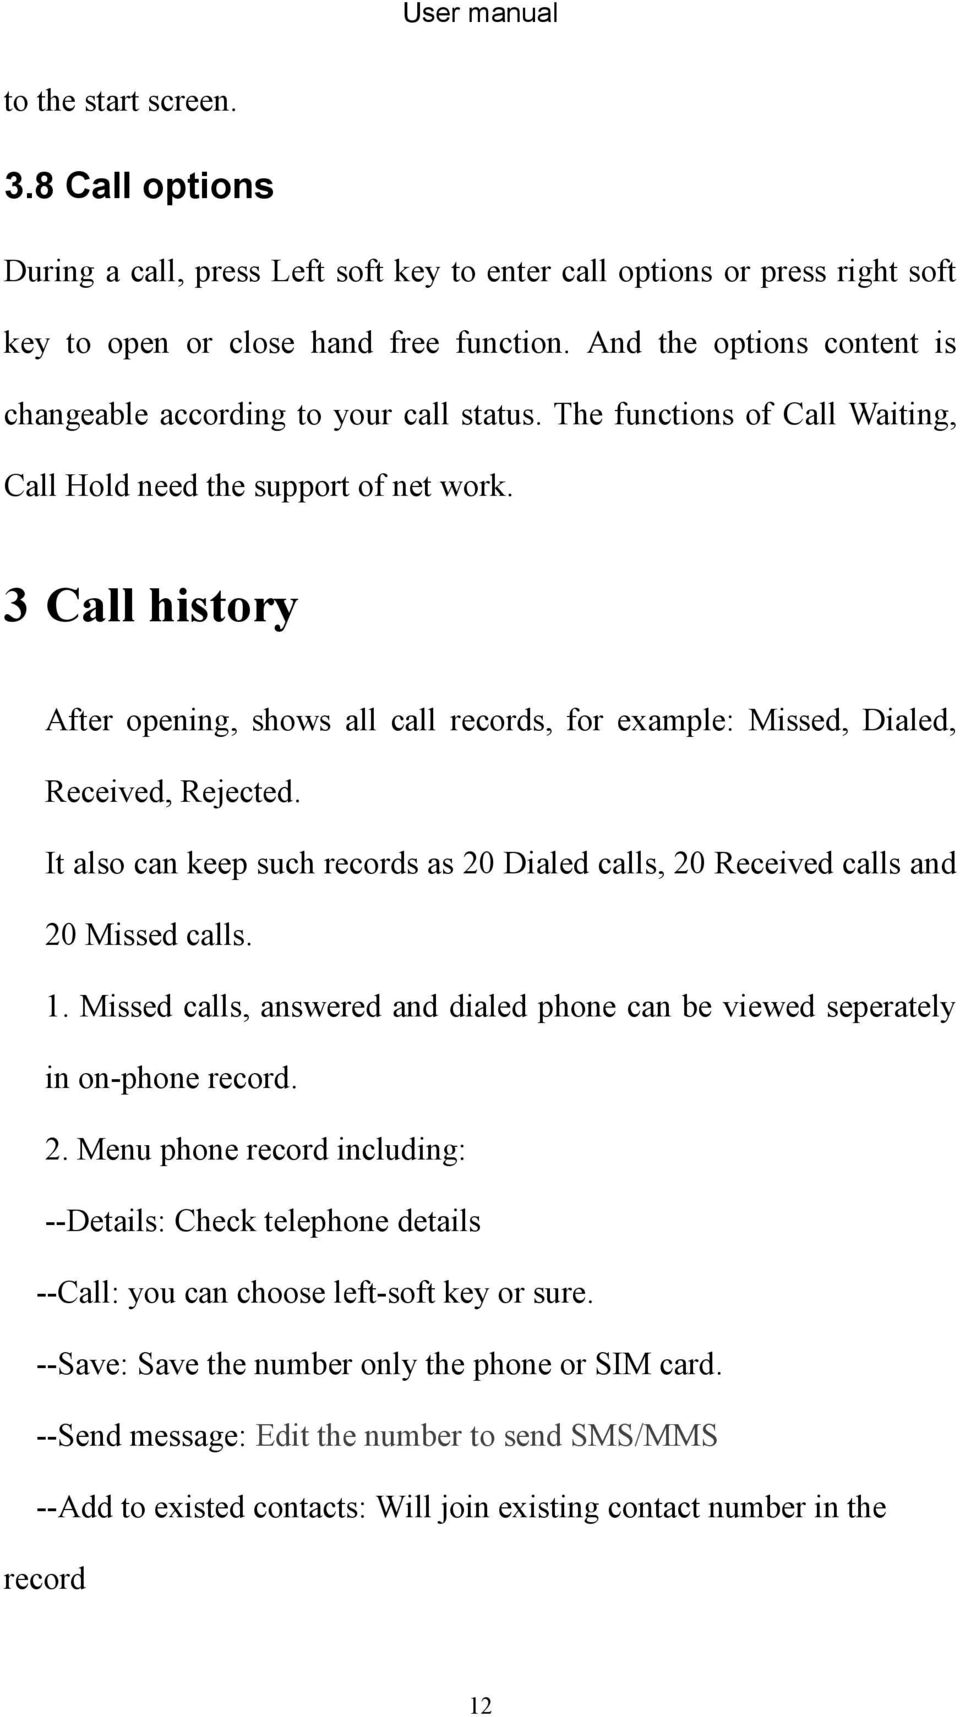 3 Call history After opening, shows all call records, for example: Missed, Dialed, Received, Rejected. It also can keep such records as 20 Dialed calls, 20 Received calls and 20 Missed calls. 1.